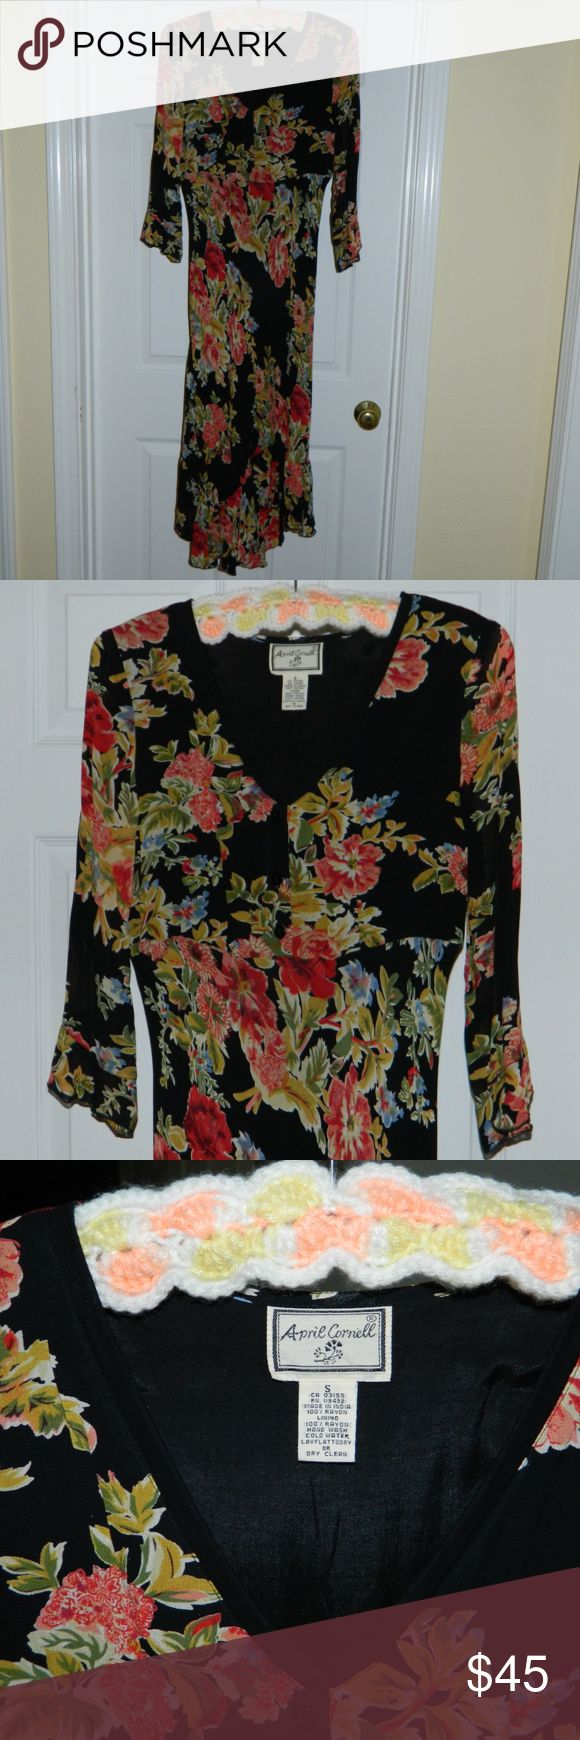 April Cornell Floral dress Women's Size Small. Knee Length Dress. Tie-back. Beautiful condition April Cornell Dresses Long Sleeve